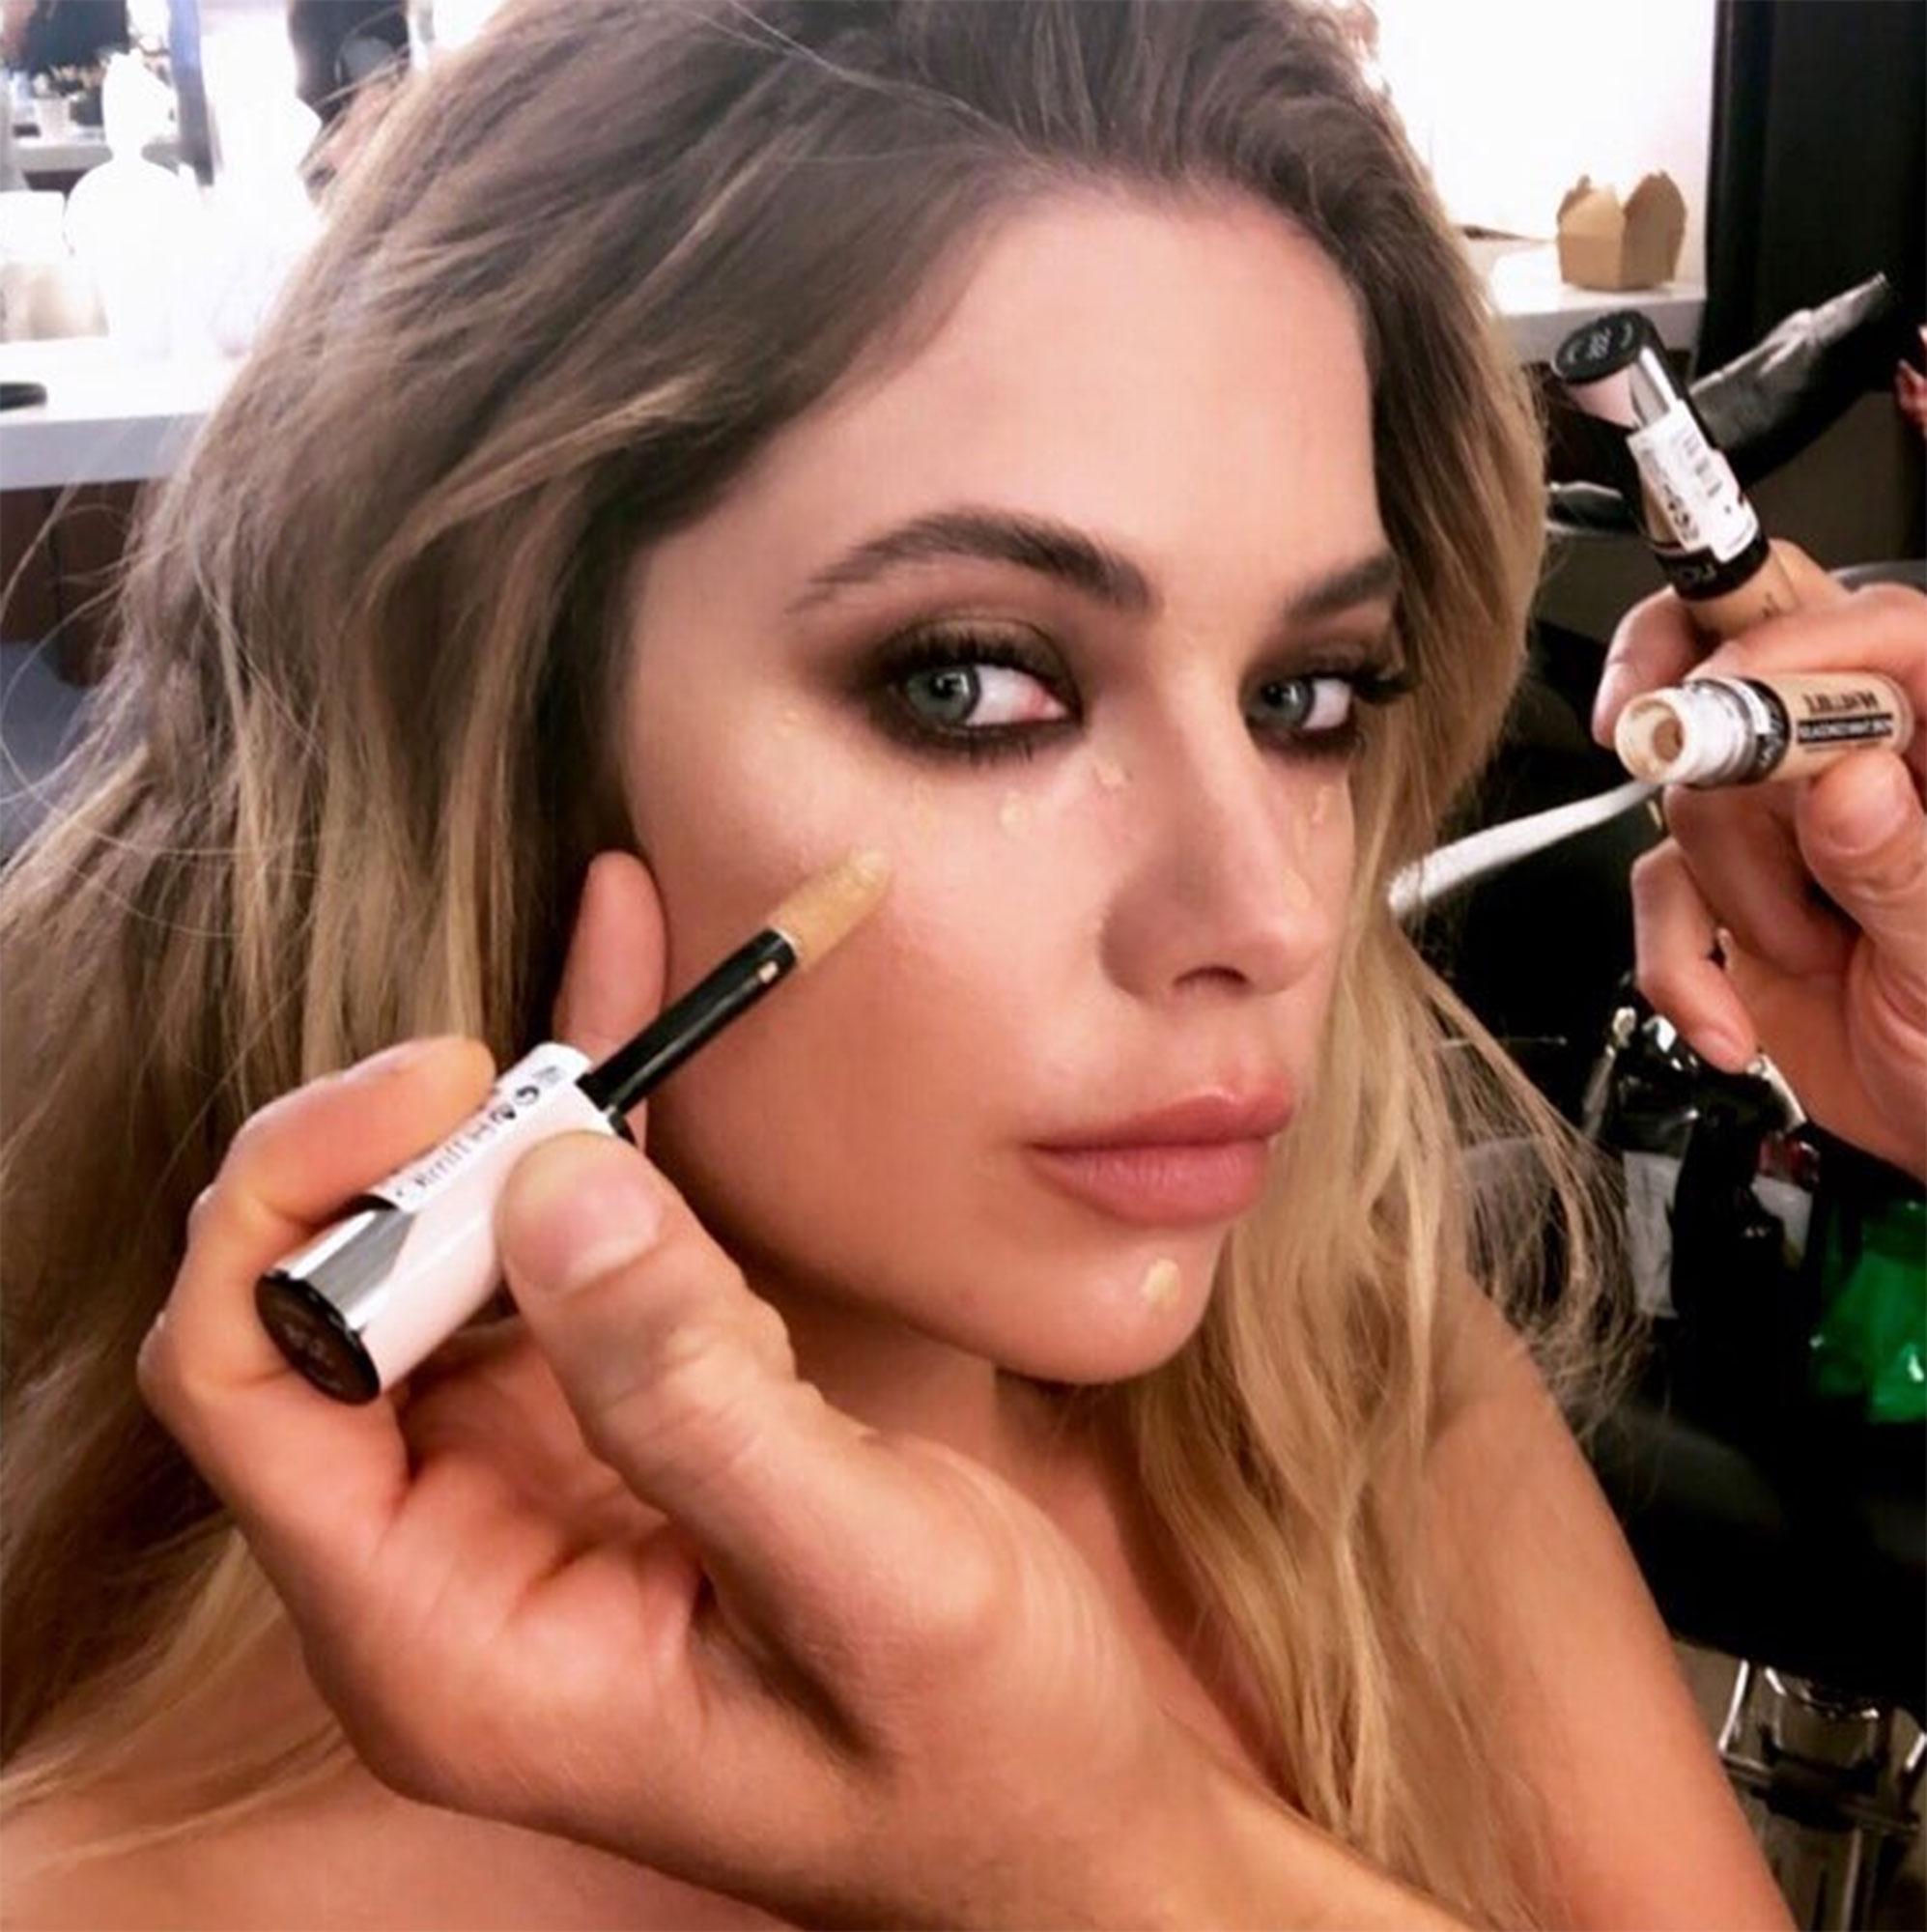 """5 Spring Beauty Tips From Beyonce¹s Makeup Artist Sir John - The best foundation is the one no one can tell you're wearing, and Sir John recommends everyone's makeup kit include a brush used solely for complexion perfection. """"I always like to have a huge brush to buff — it's like my magic eraser. I use it regardless of the foundation or tinted moisturizer to diffuse any lines,"""" he shares."""